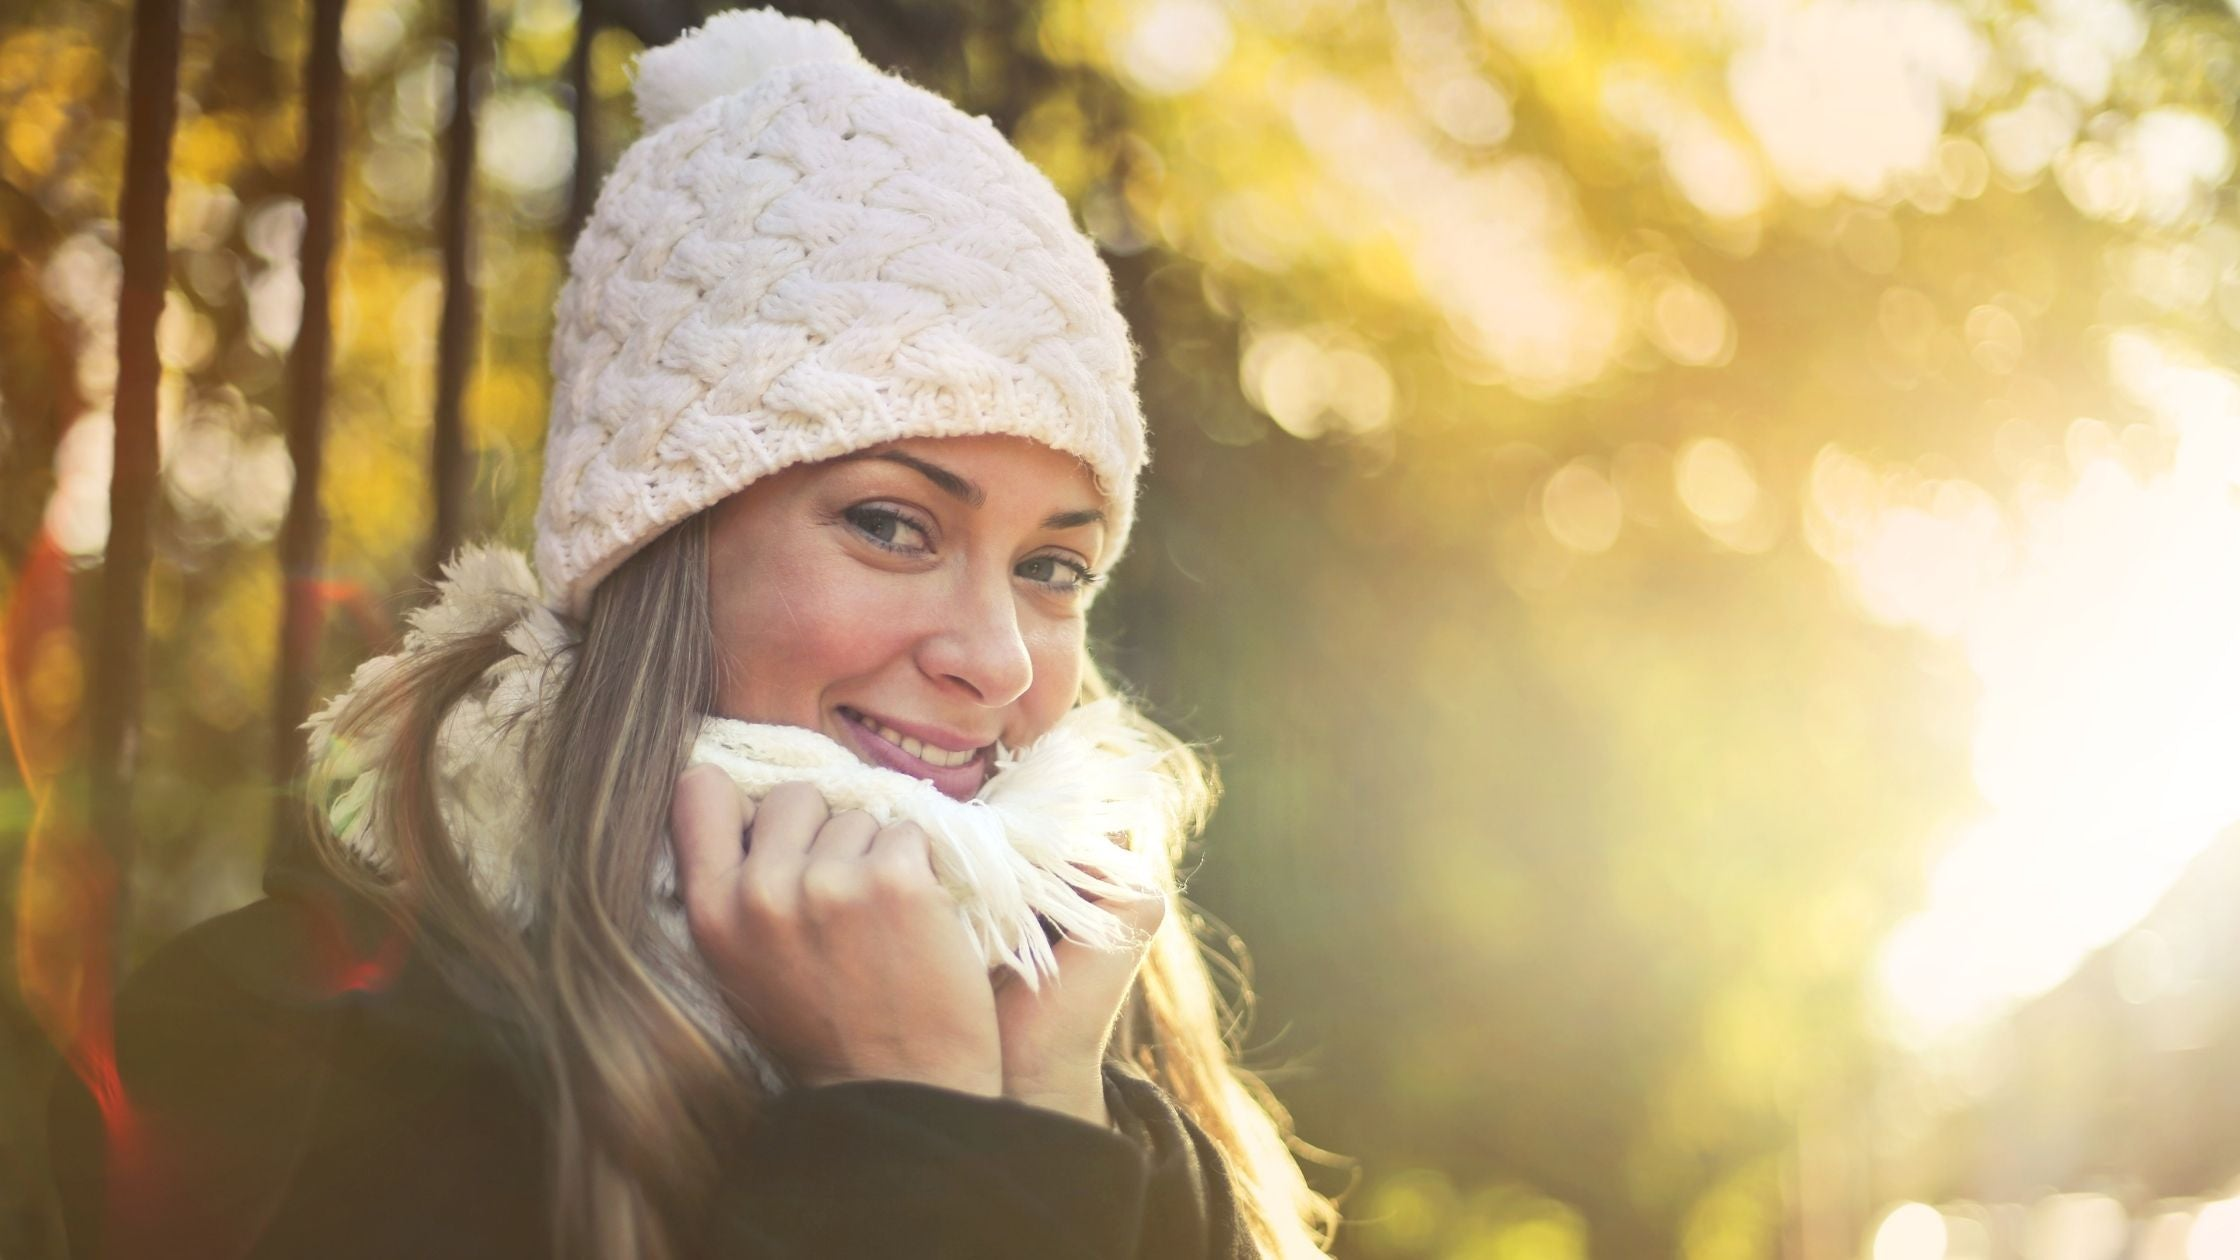 Winter Skincare Ingredients For Dry Skin